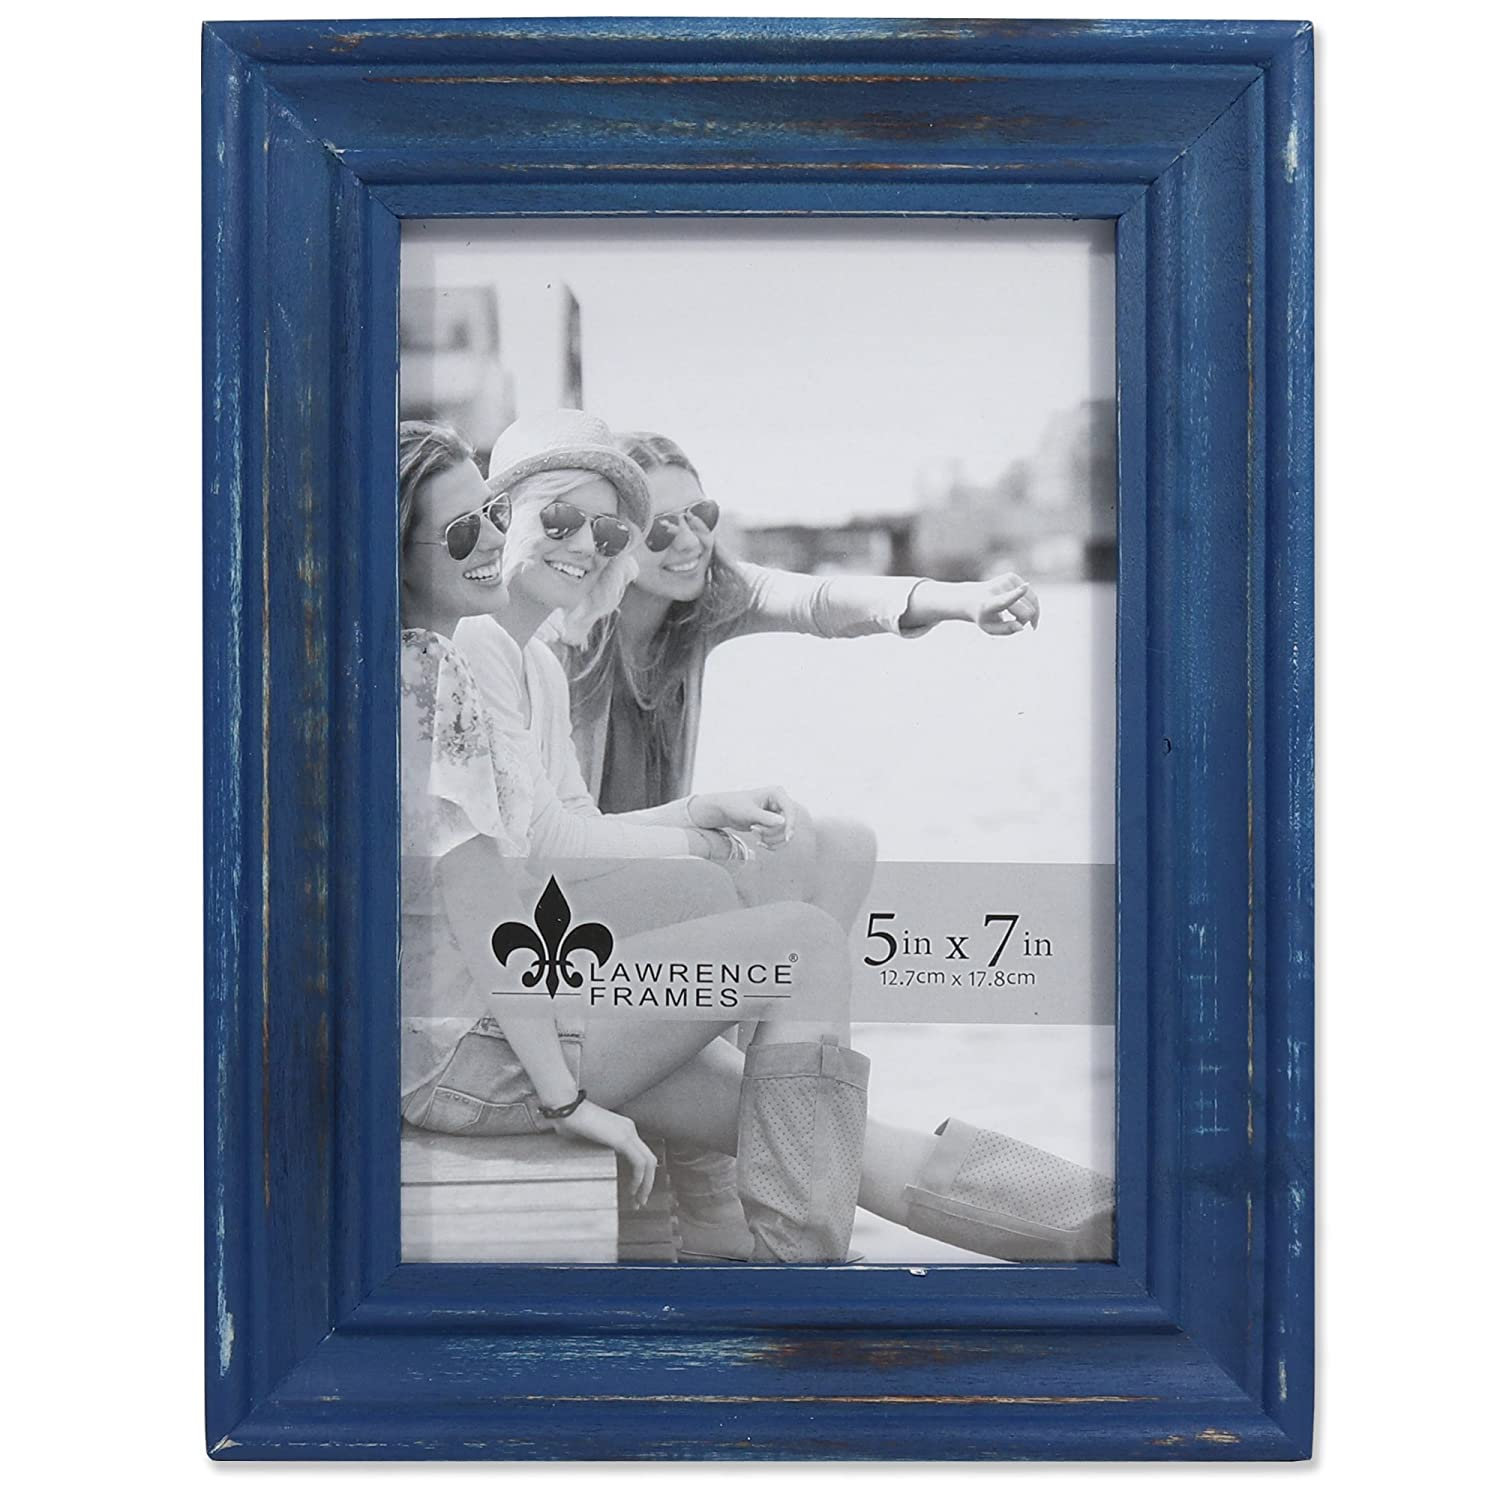 Lawrence Frames 5x7 Durham Weathered Navy Blue Wood Picture 746657